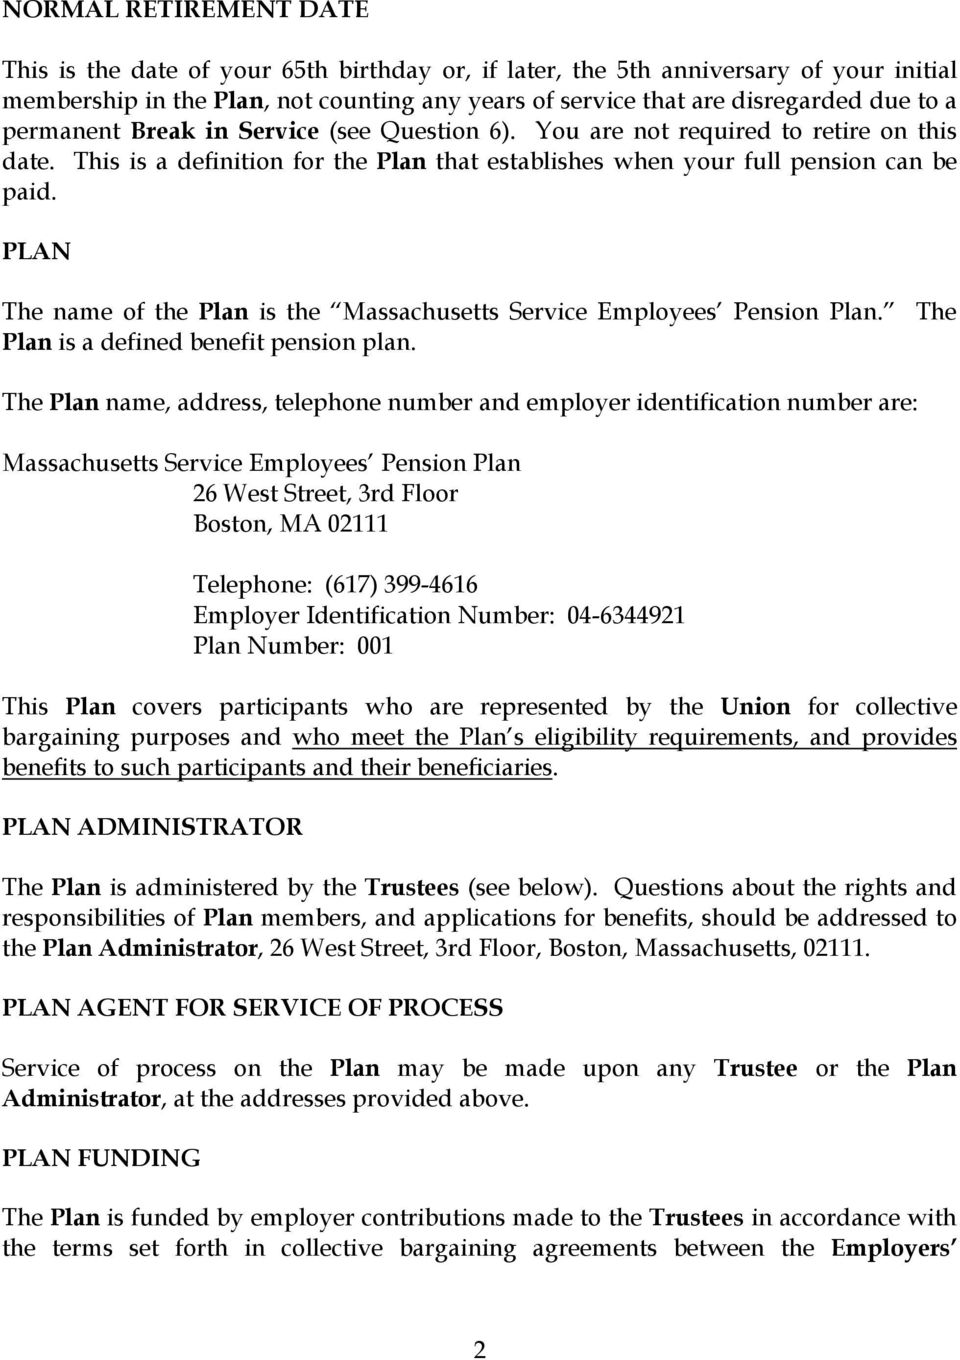 PLAN The name of the Plan is the Massachusetts Service Employees Pension Plan. The Plan is a defined benefit pension plan.